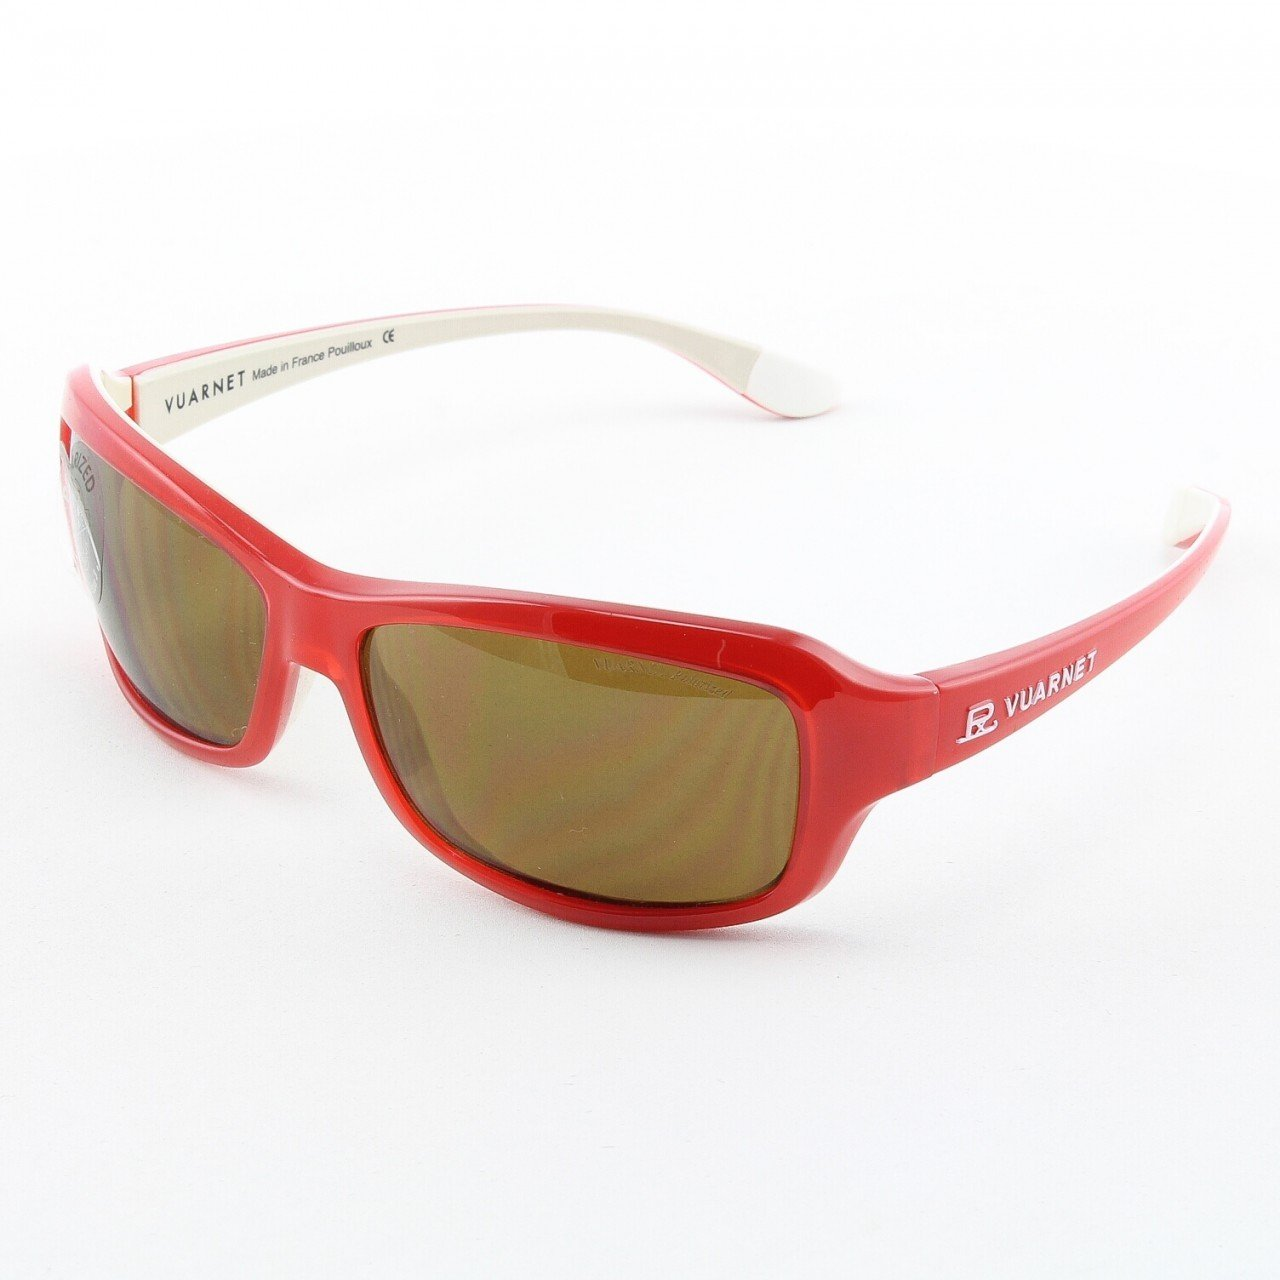 Vuarnet VL 1032 Sunglasses Col. 0004 2721 Red and White with Brown Polarized PC2000 Lenses